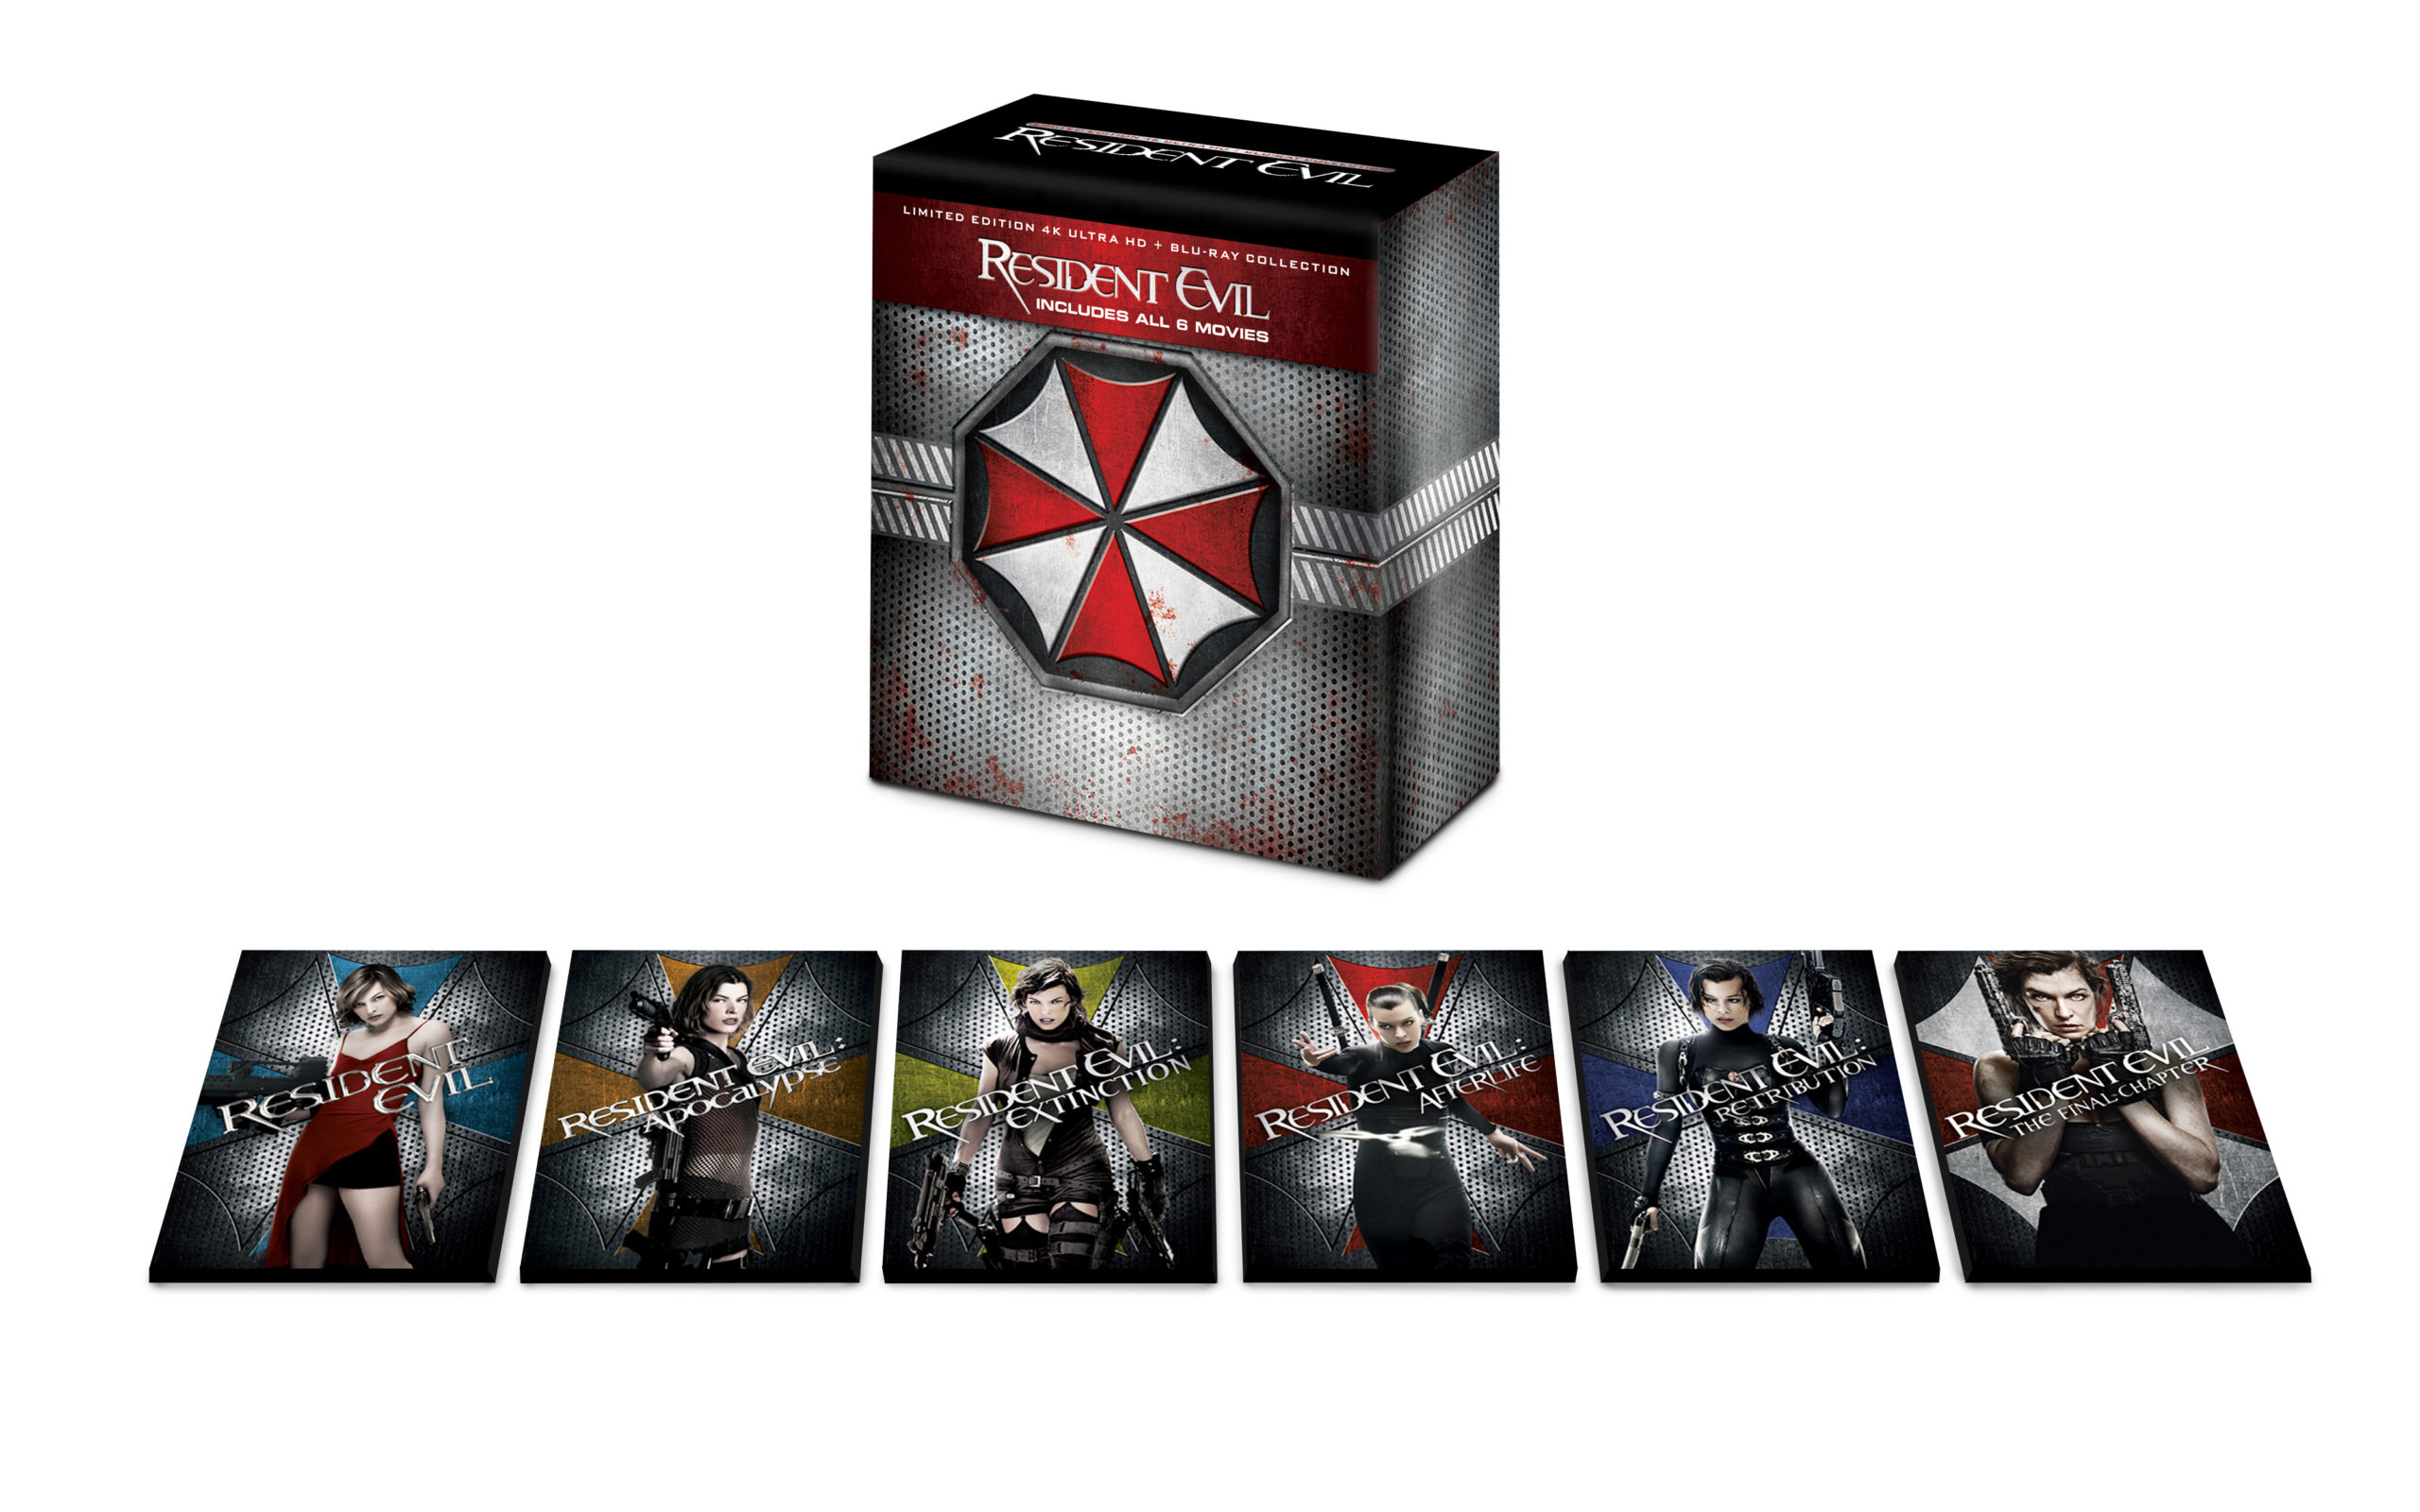 The Entire Resident Evil Film Collection Getting 4k Box Set With